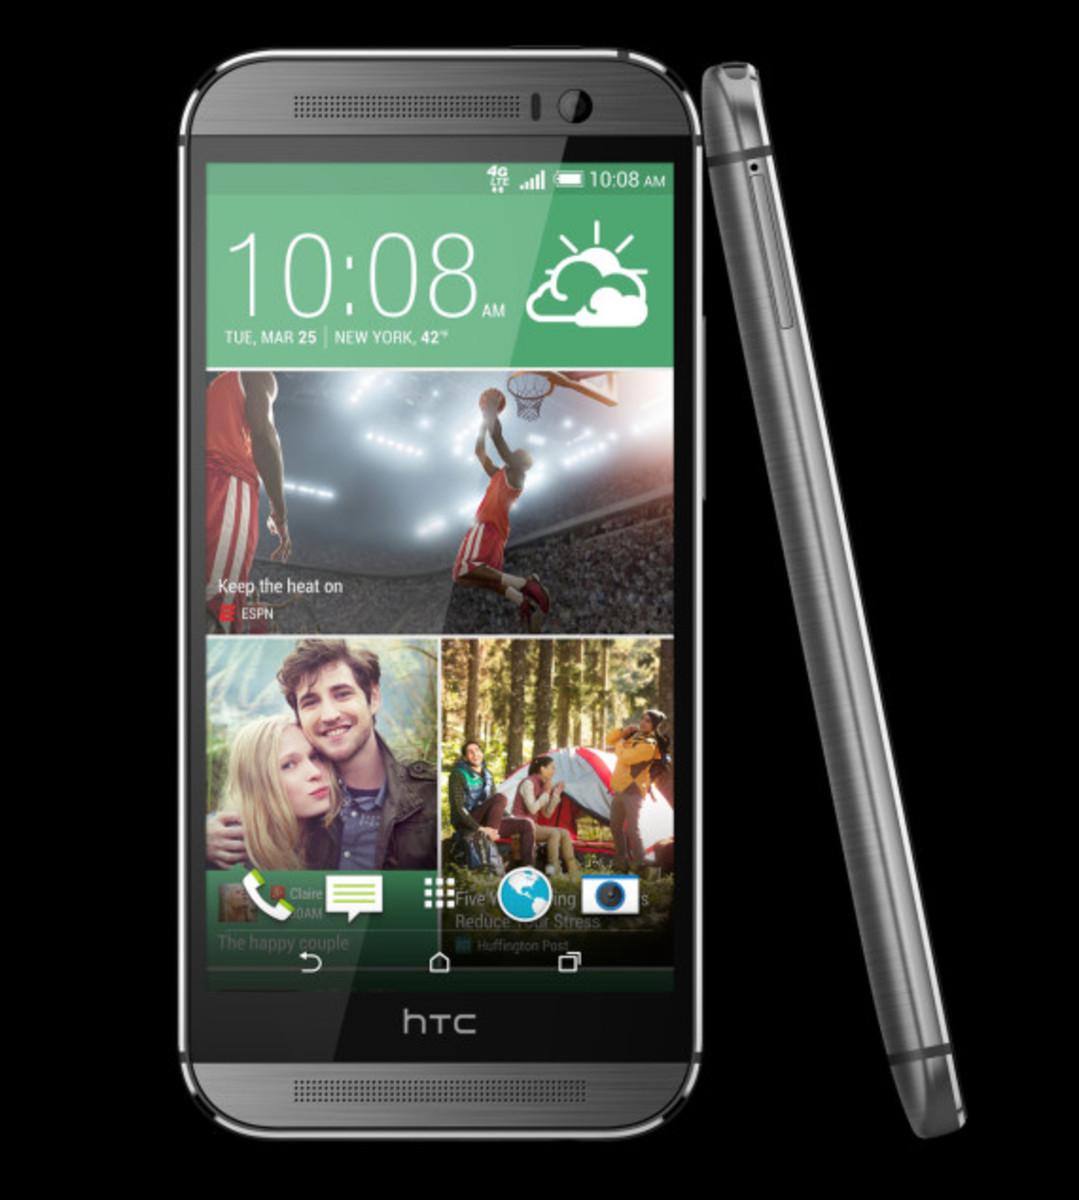 htc-one-m8-duo-camera-smartphone-unveiled-02